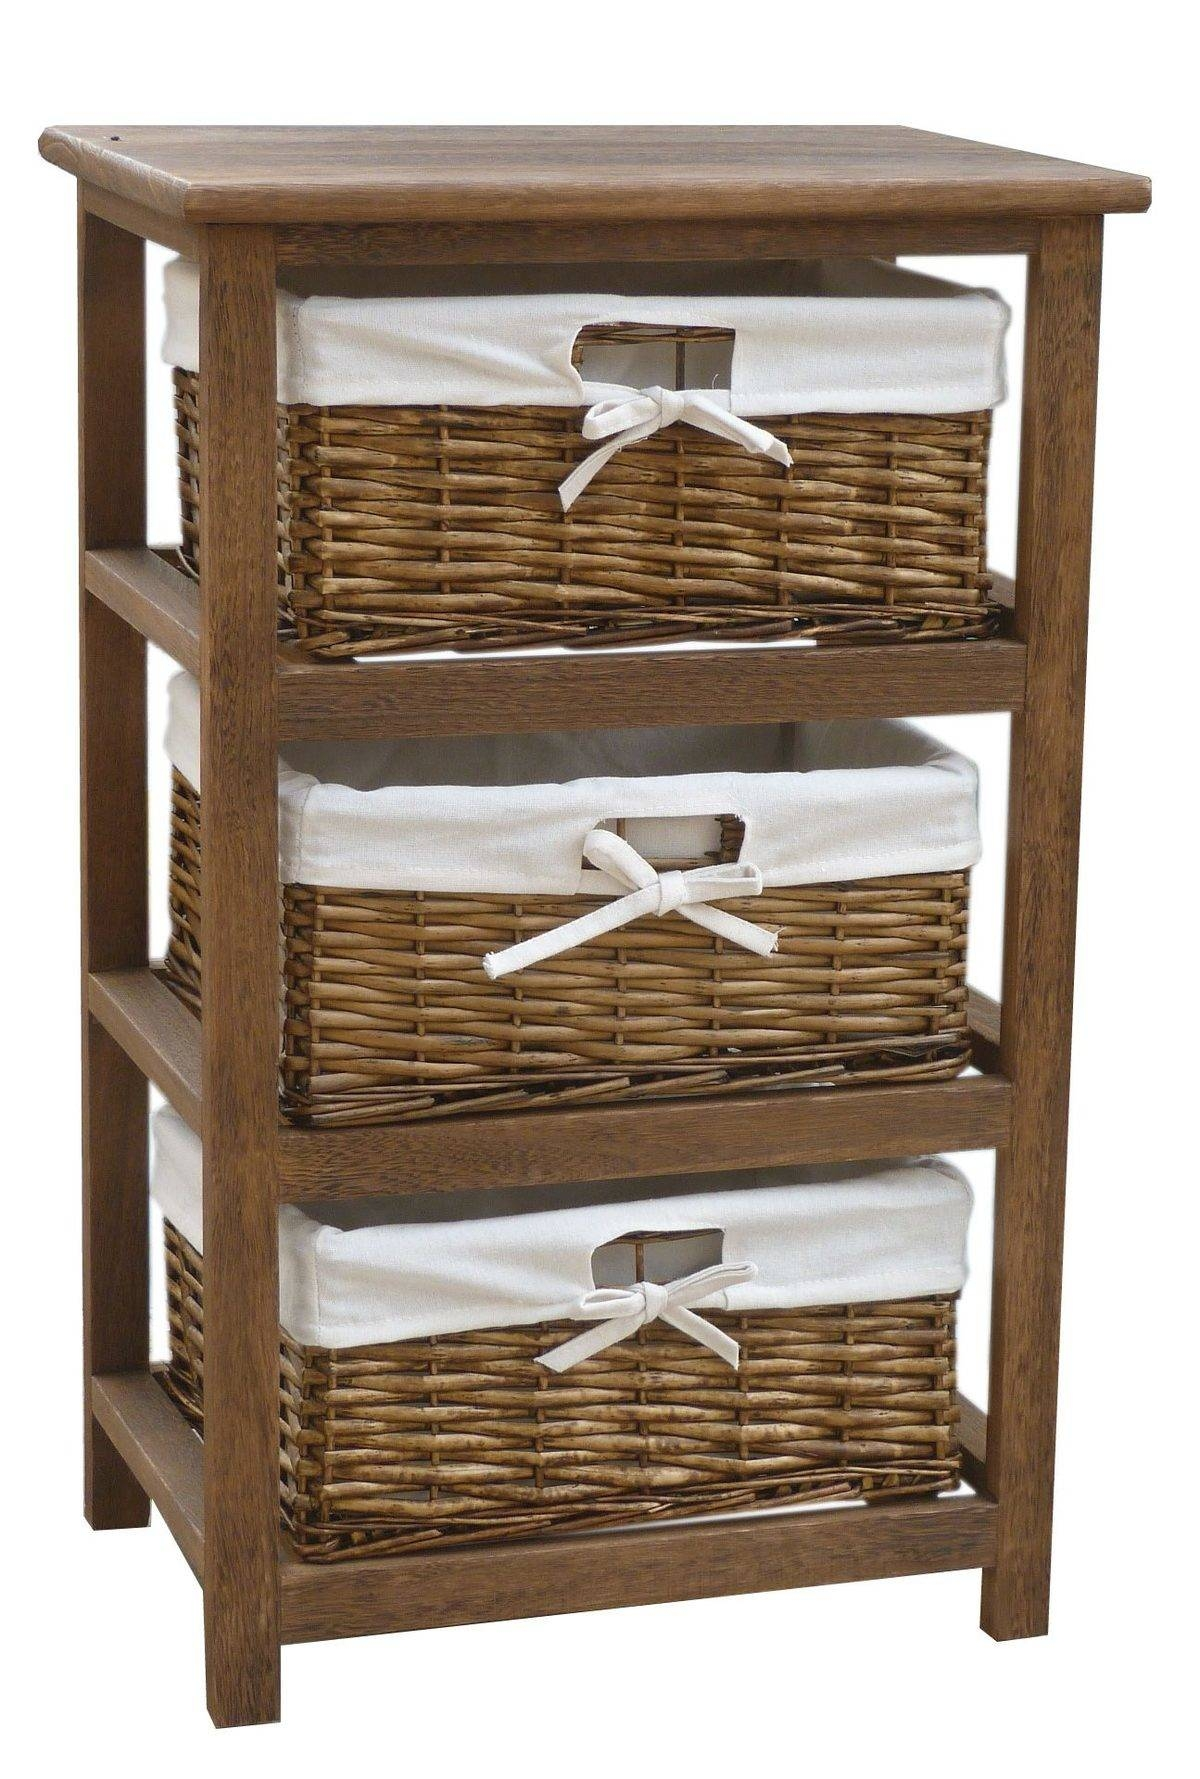 Wicker Storage Cabinets With Basketsbentley home wooden storage cabinets with 3 wicker basket